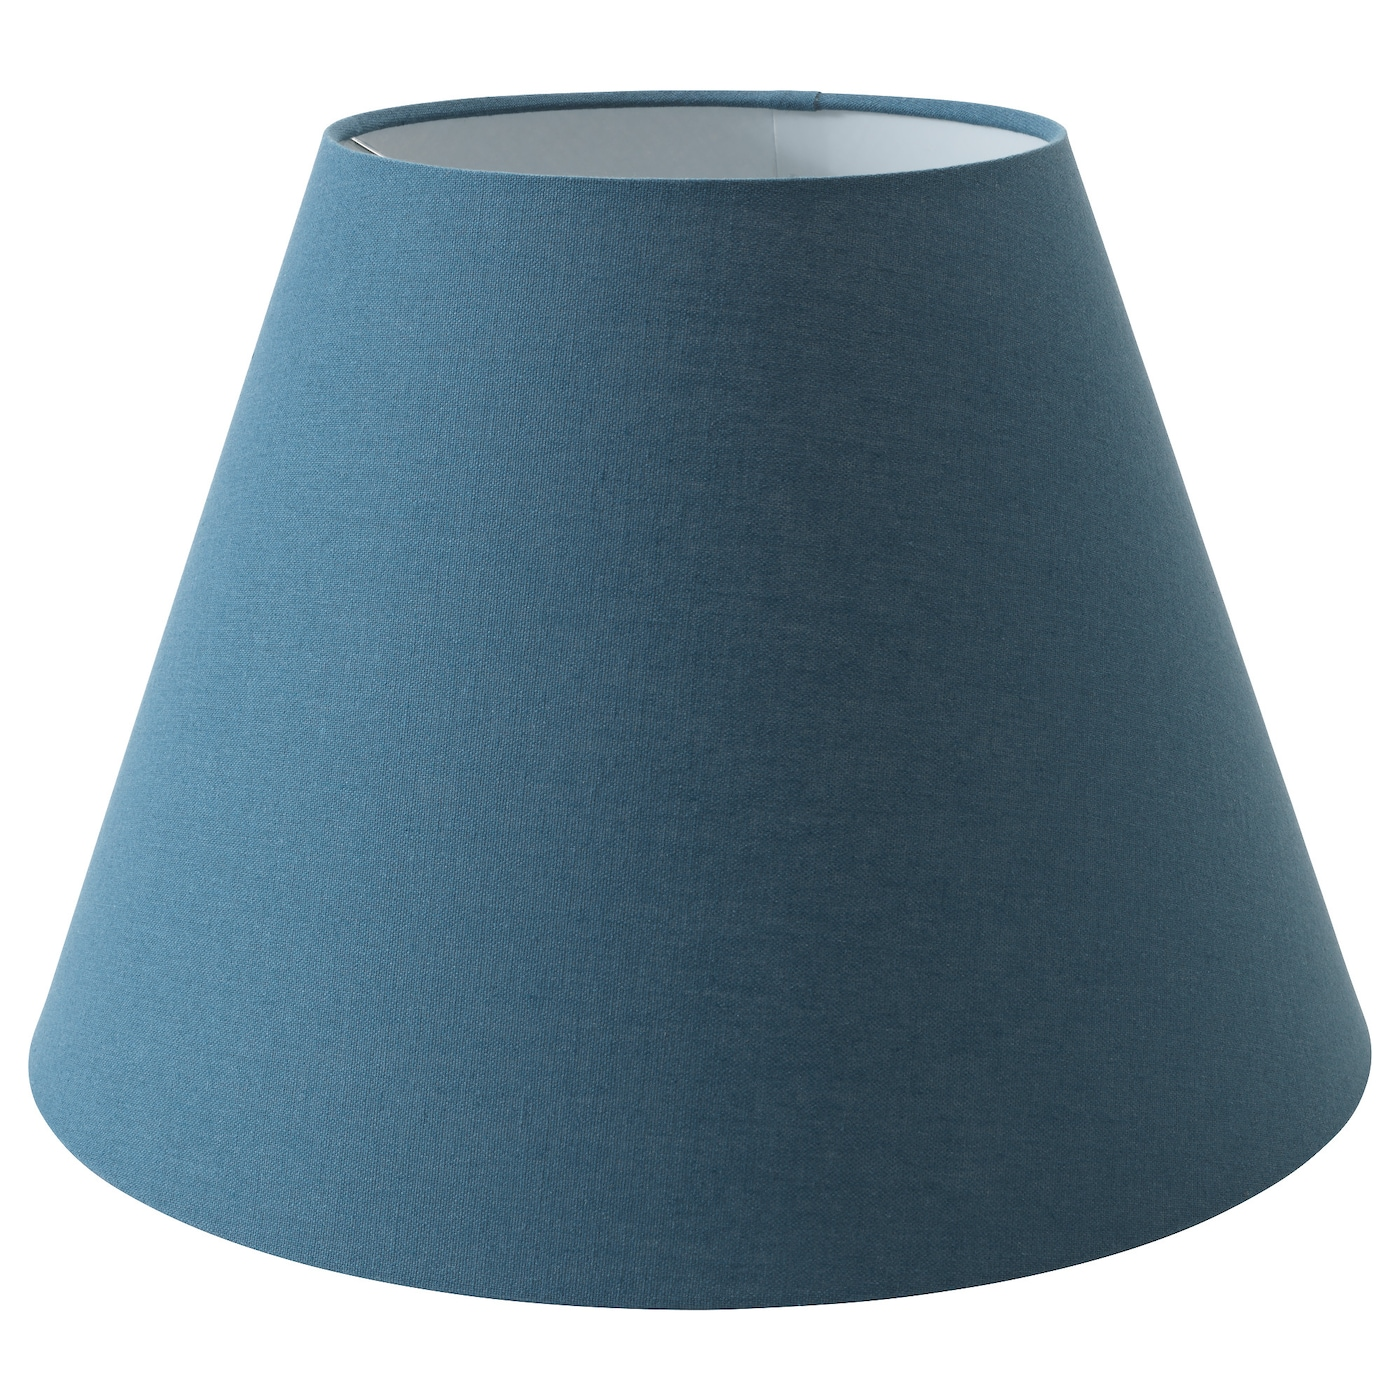 IKEA OLLSTA lamp shade